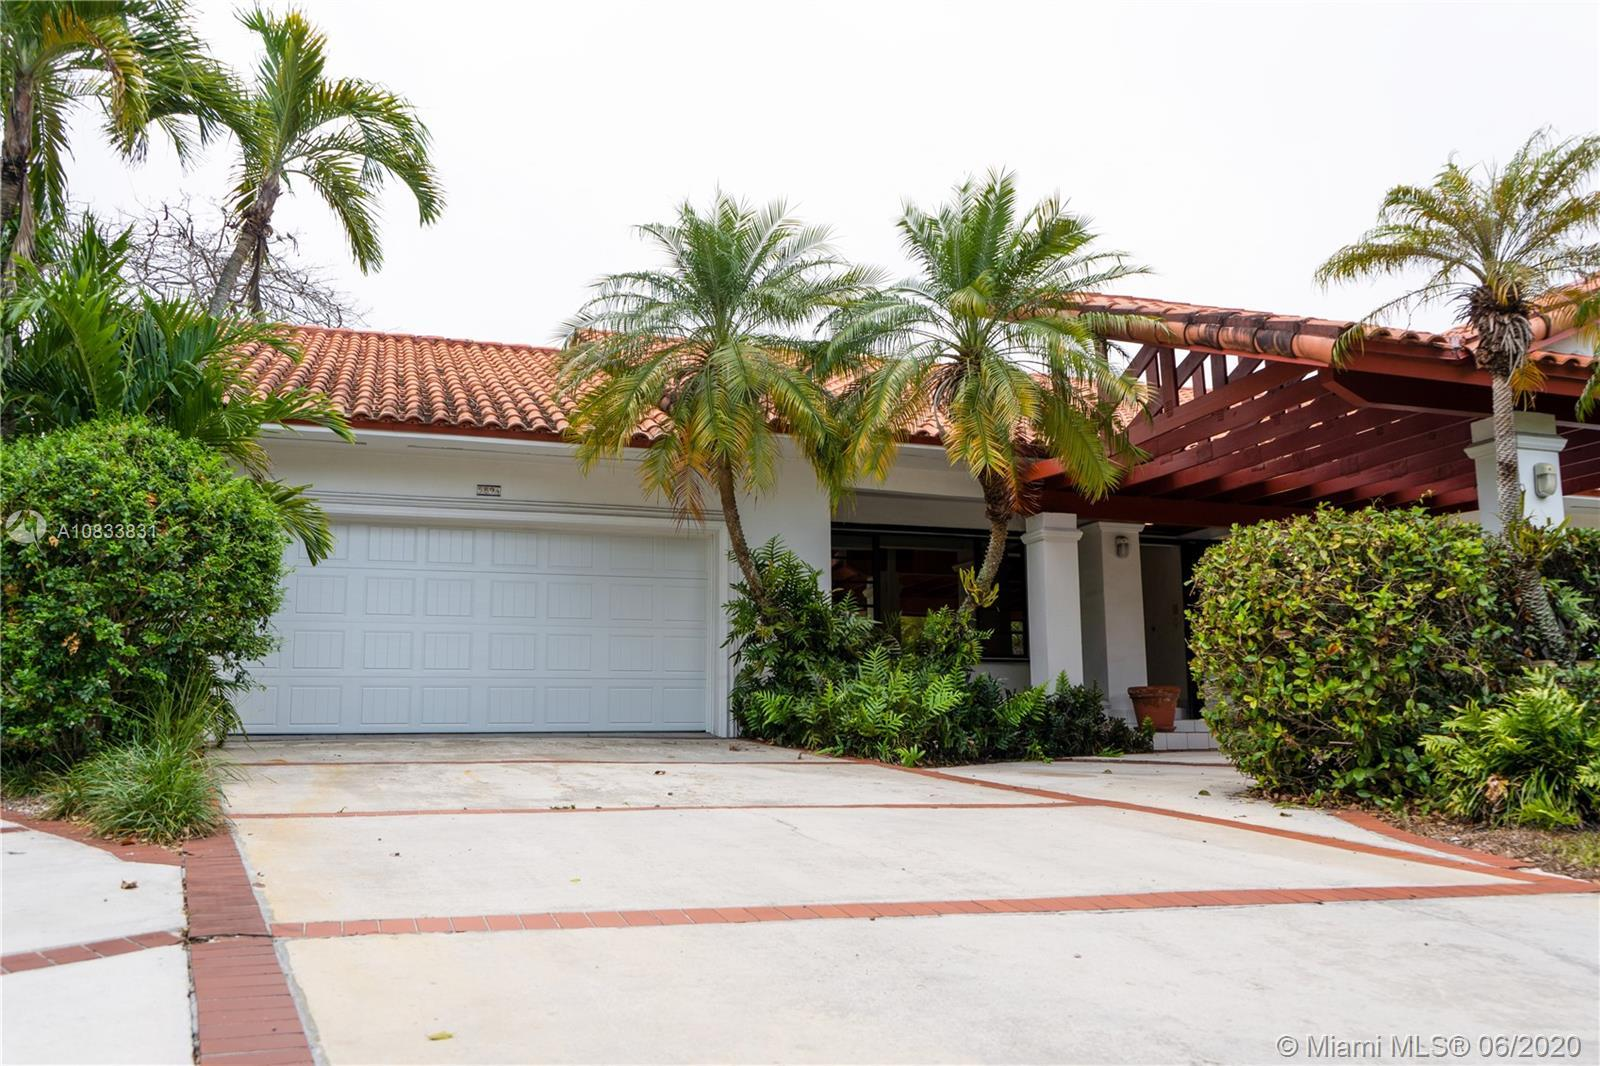 Prime Location in Pinecrest, within Gables by the Sea community!  Extremely spacious, bright and el